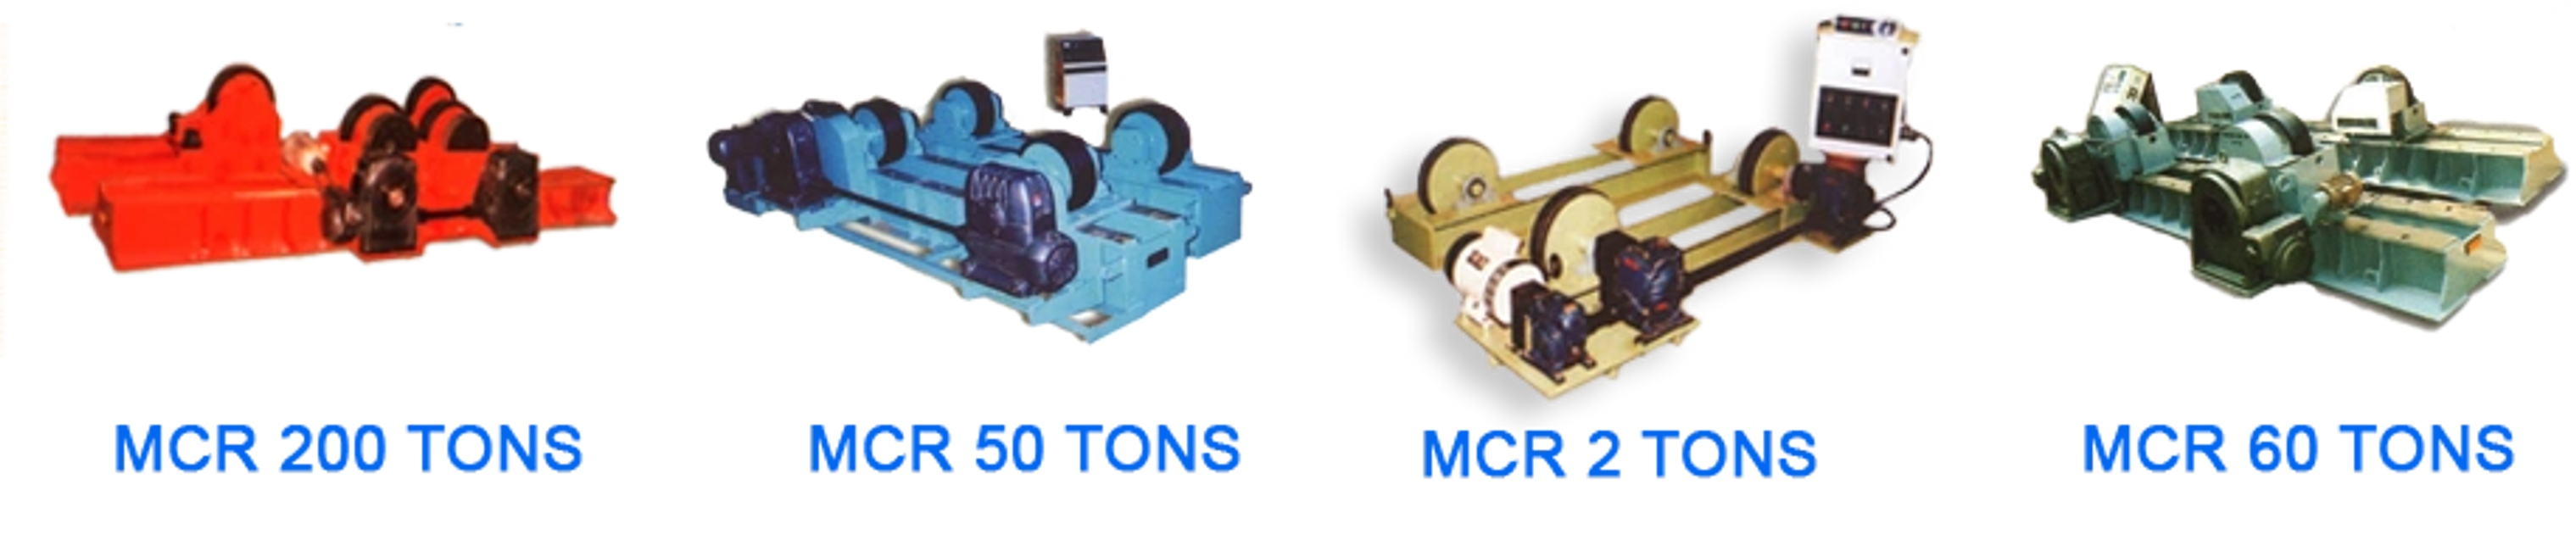 Memco Rotators are robust heavy duty design and built to rotate the Cylindrical vessels of all types.